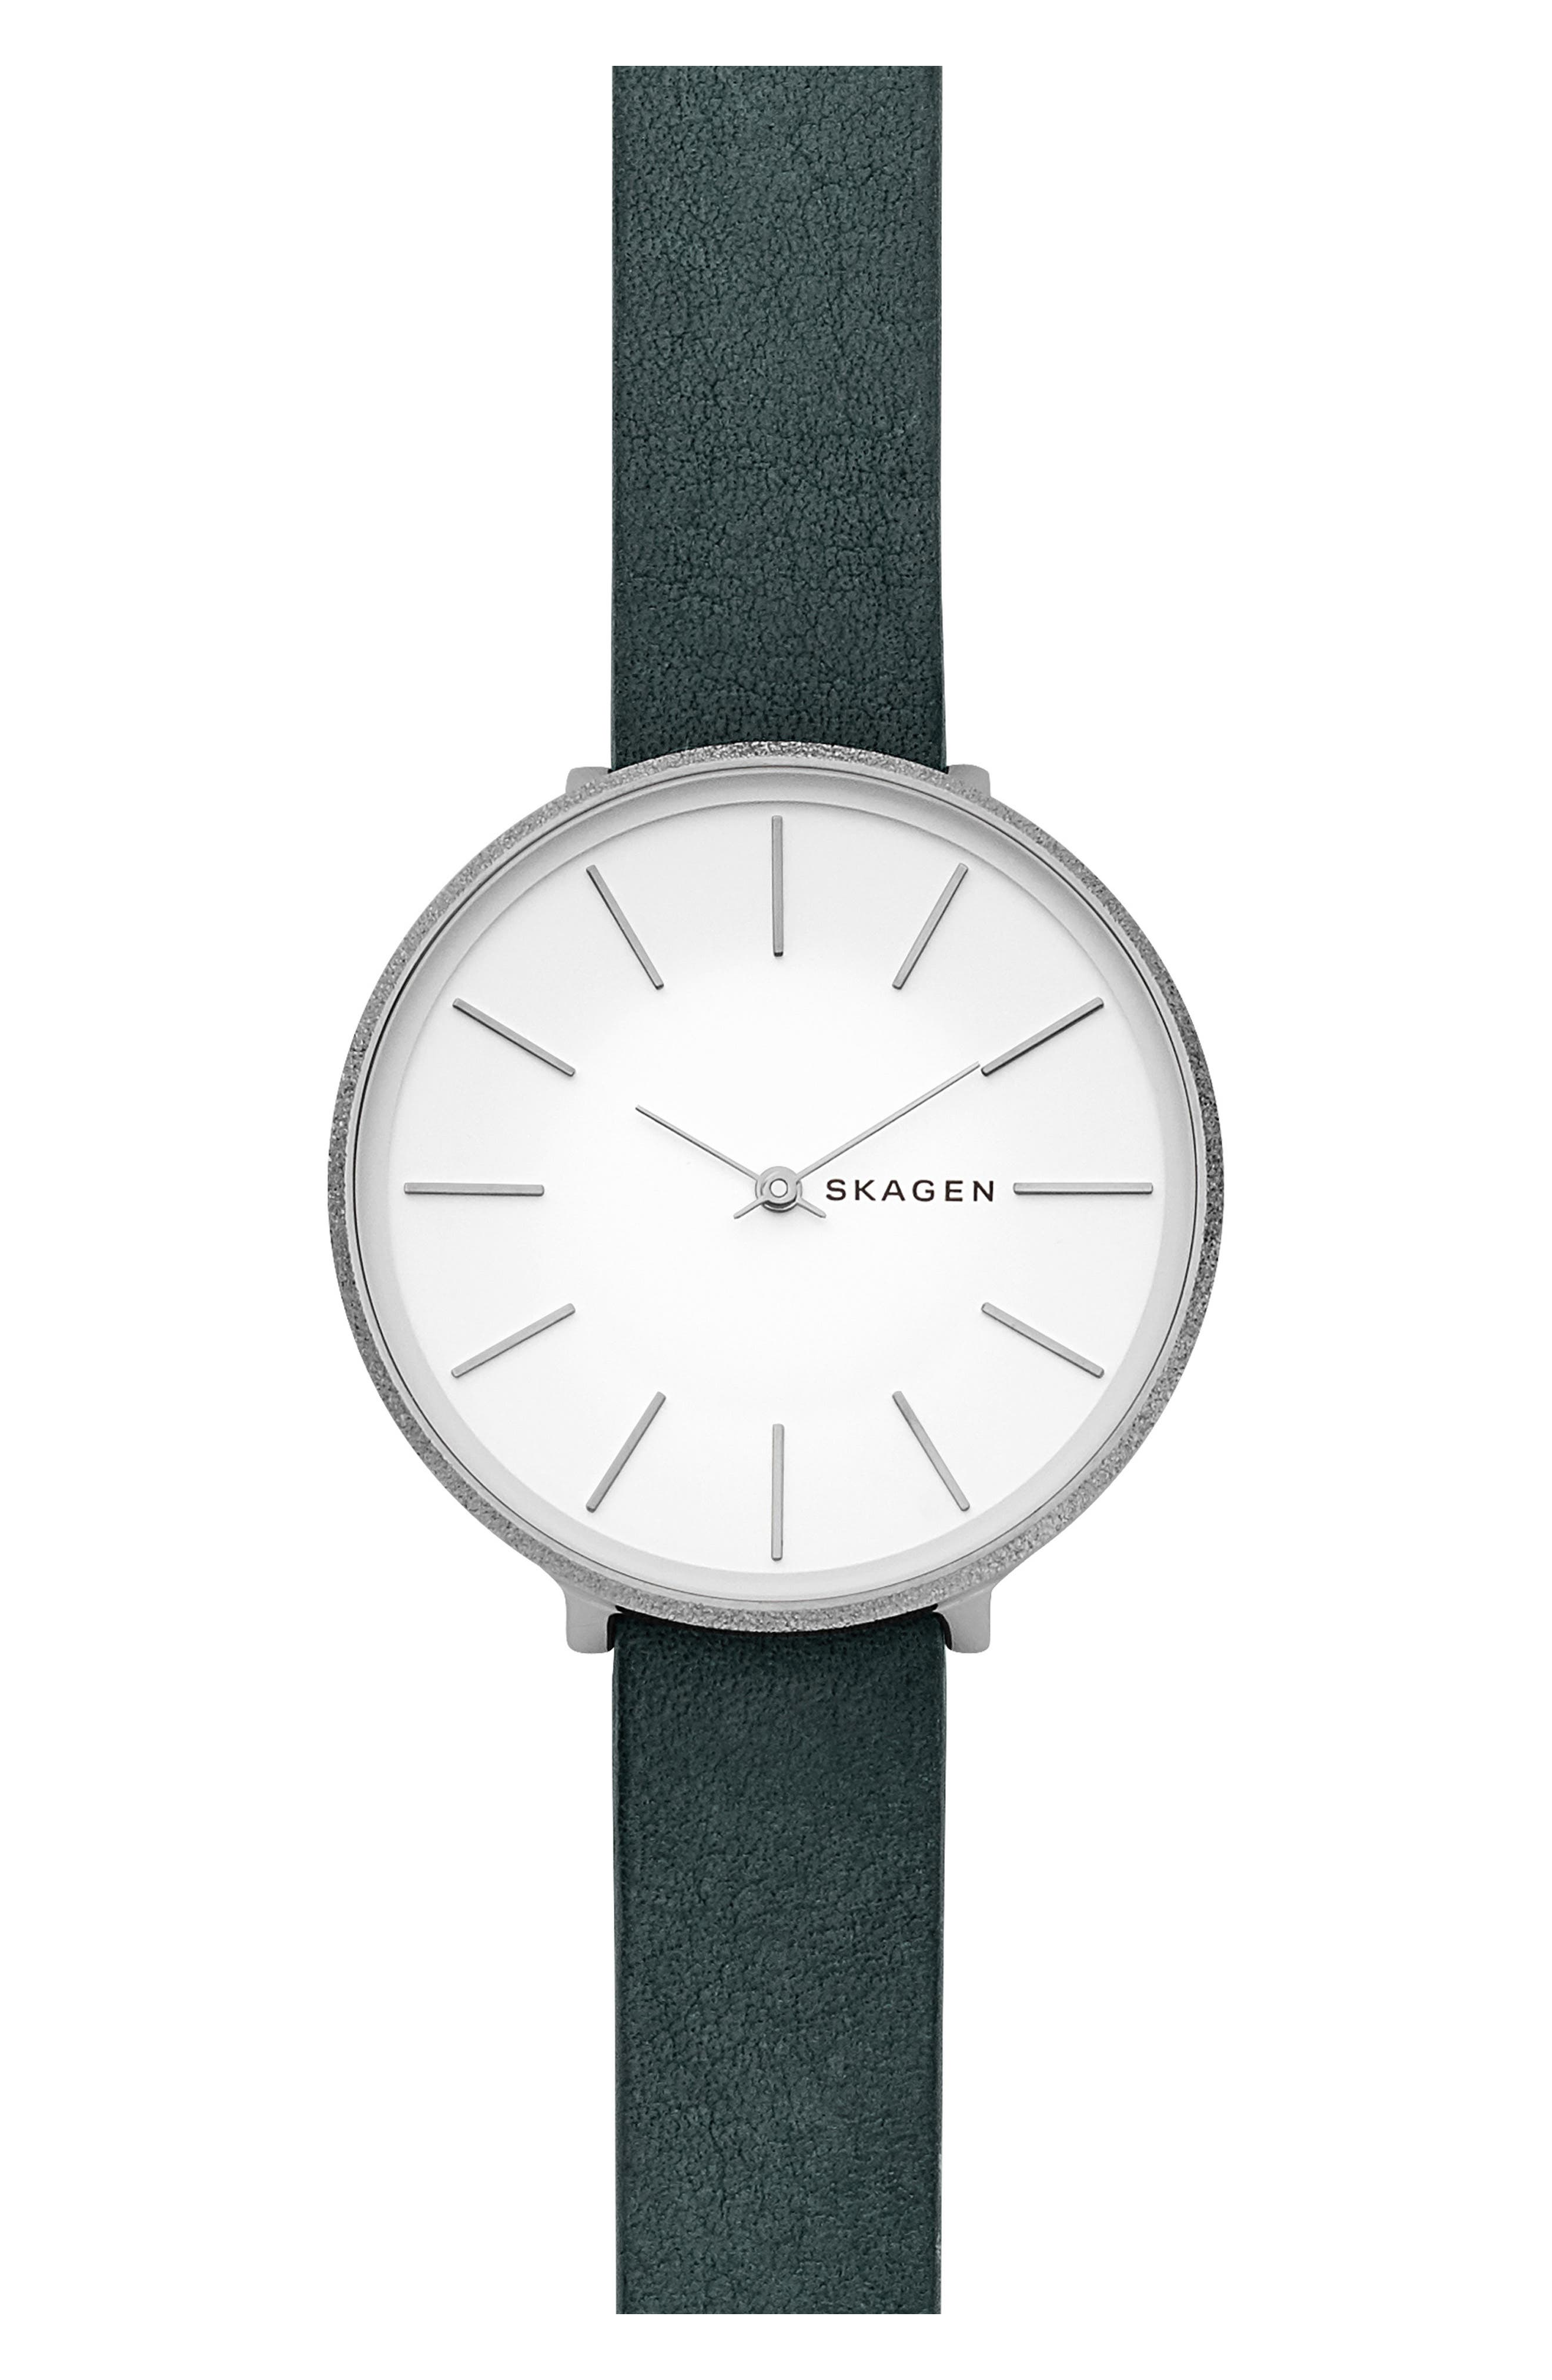 SKAGEN WOMEN'S KAROLINA GREEN LEATHER STRAP WATCH 38MM